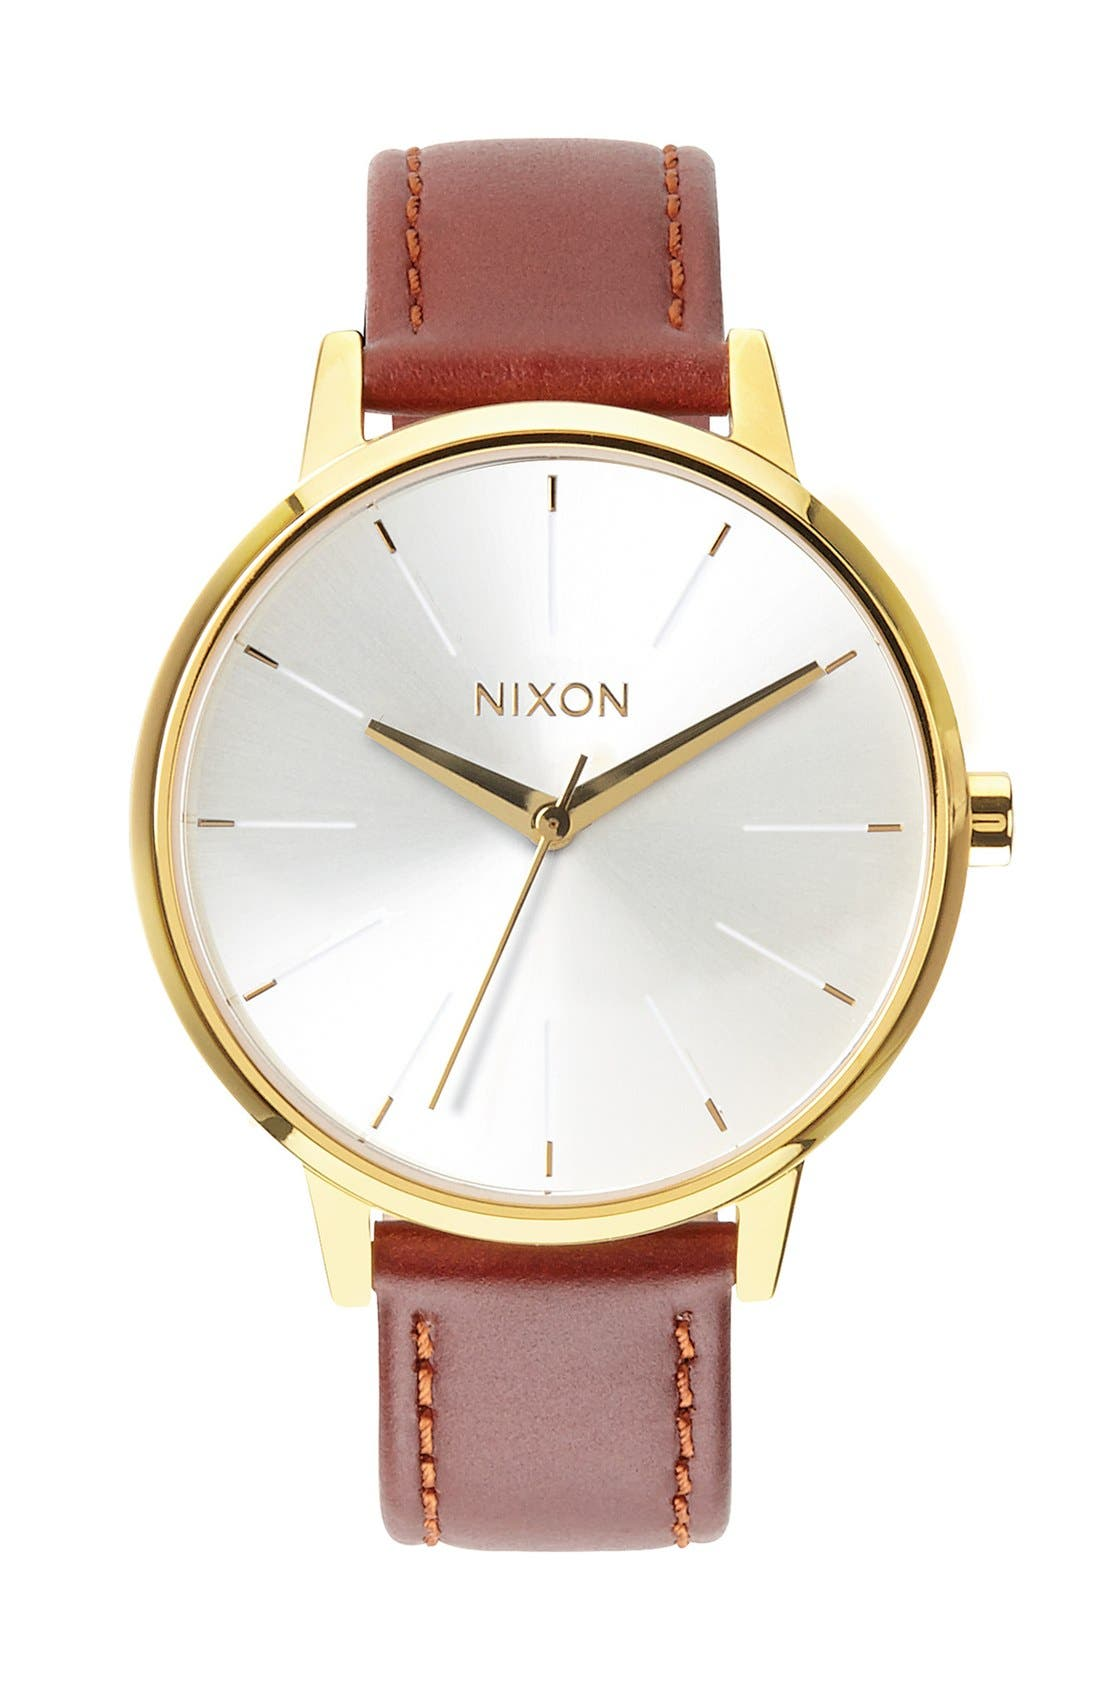 NIXON 'The Kensington' Leather Strap Watch, 37mm